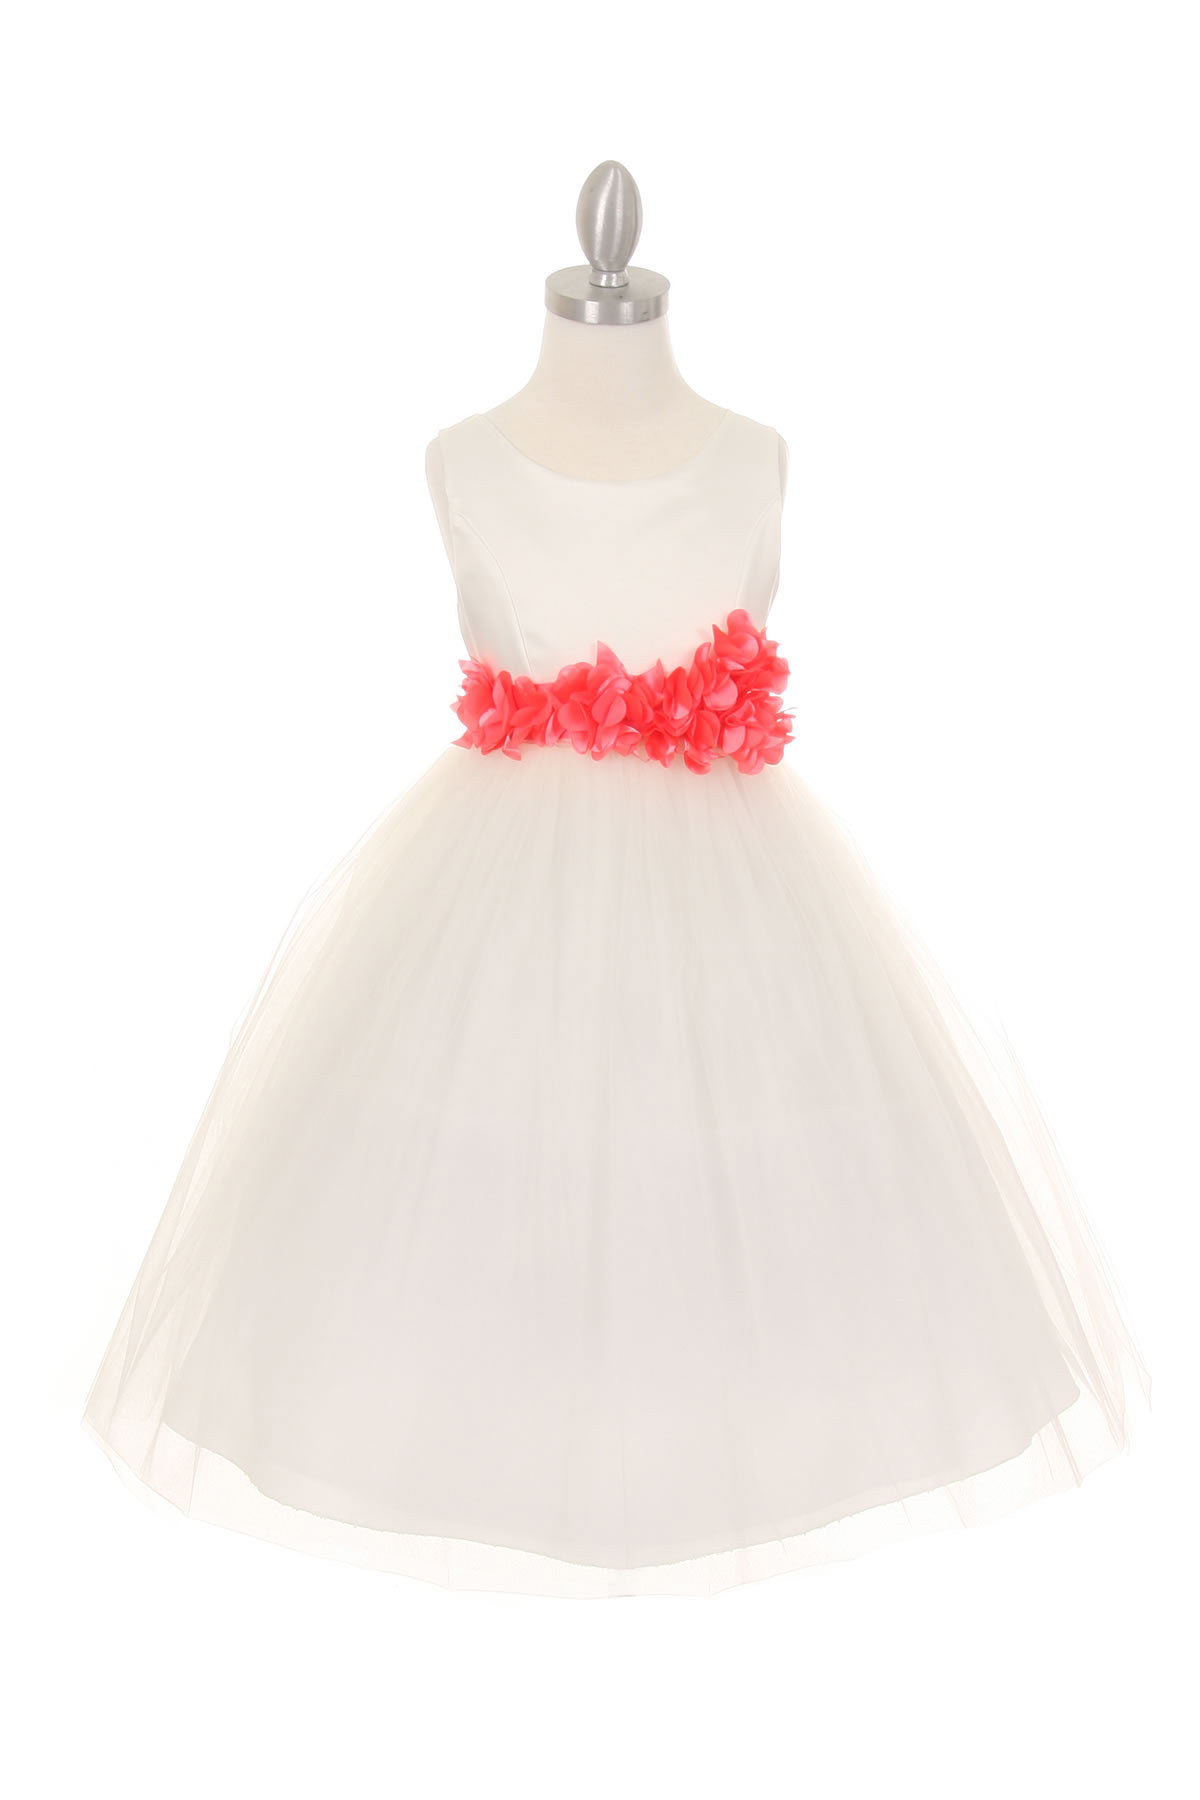 CC 1170 4IVCO Girls Dress Style 1170 4 Choice of White